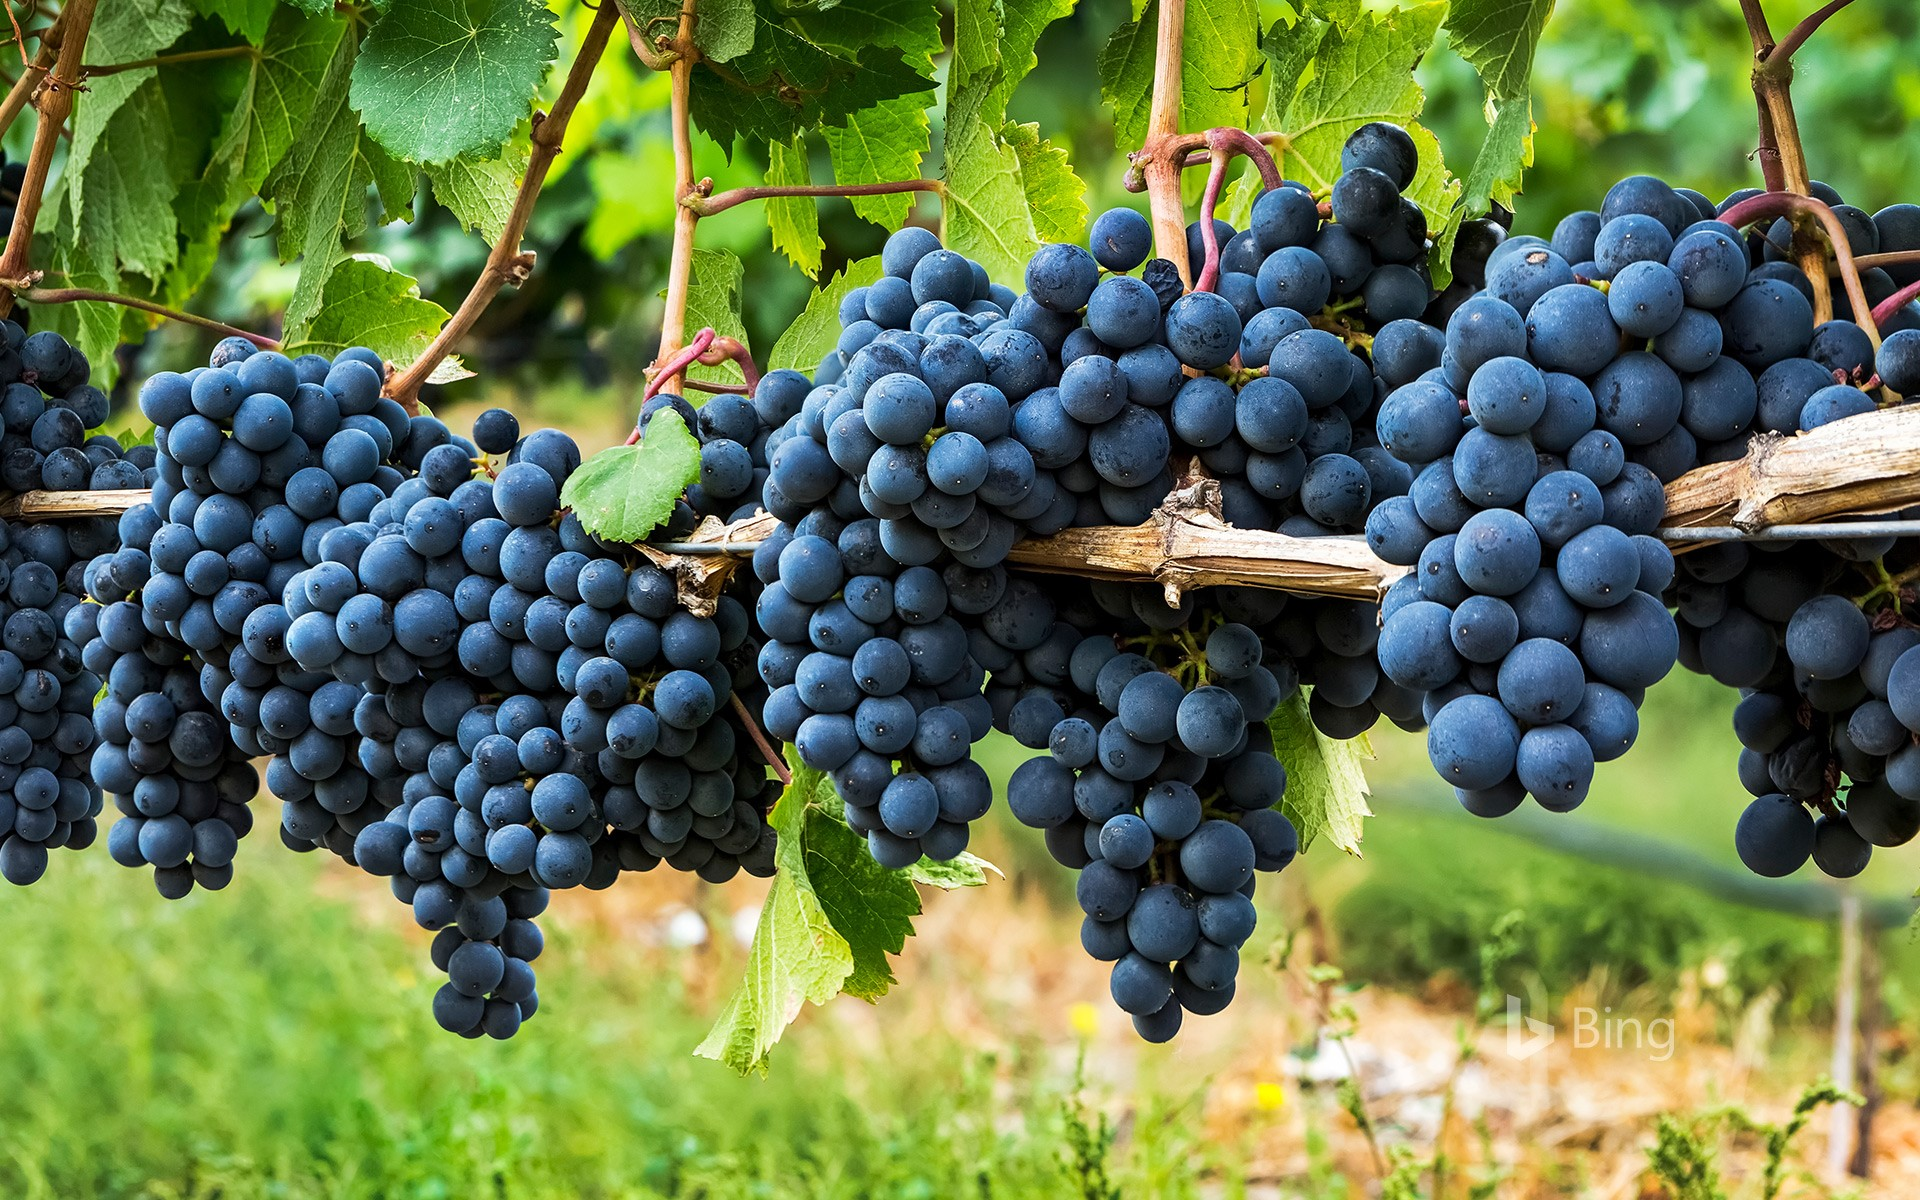 Clusters of dark purple grapes hanging on a vine in Penticton, B.C.